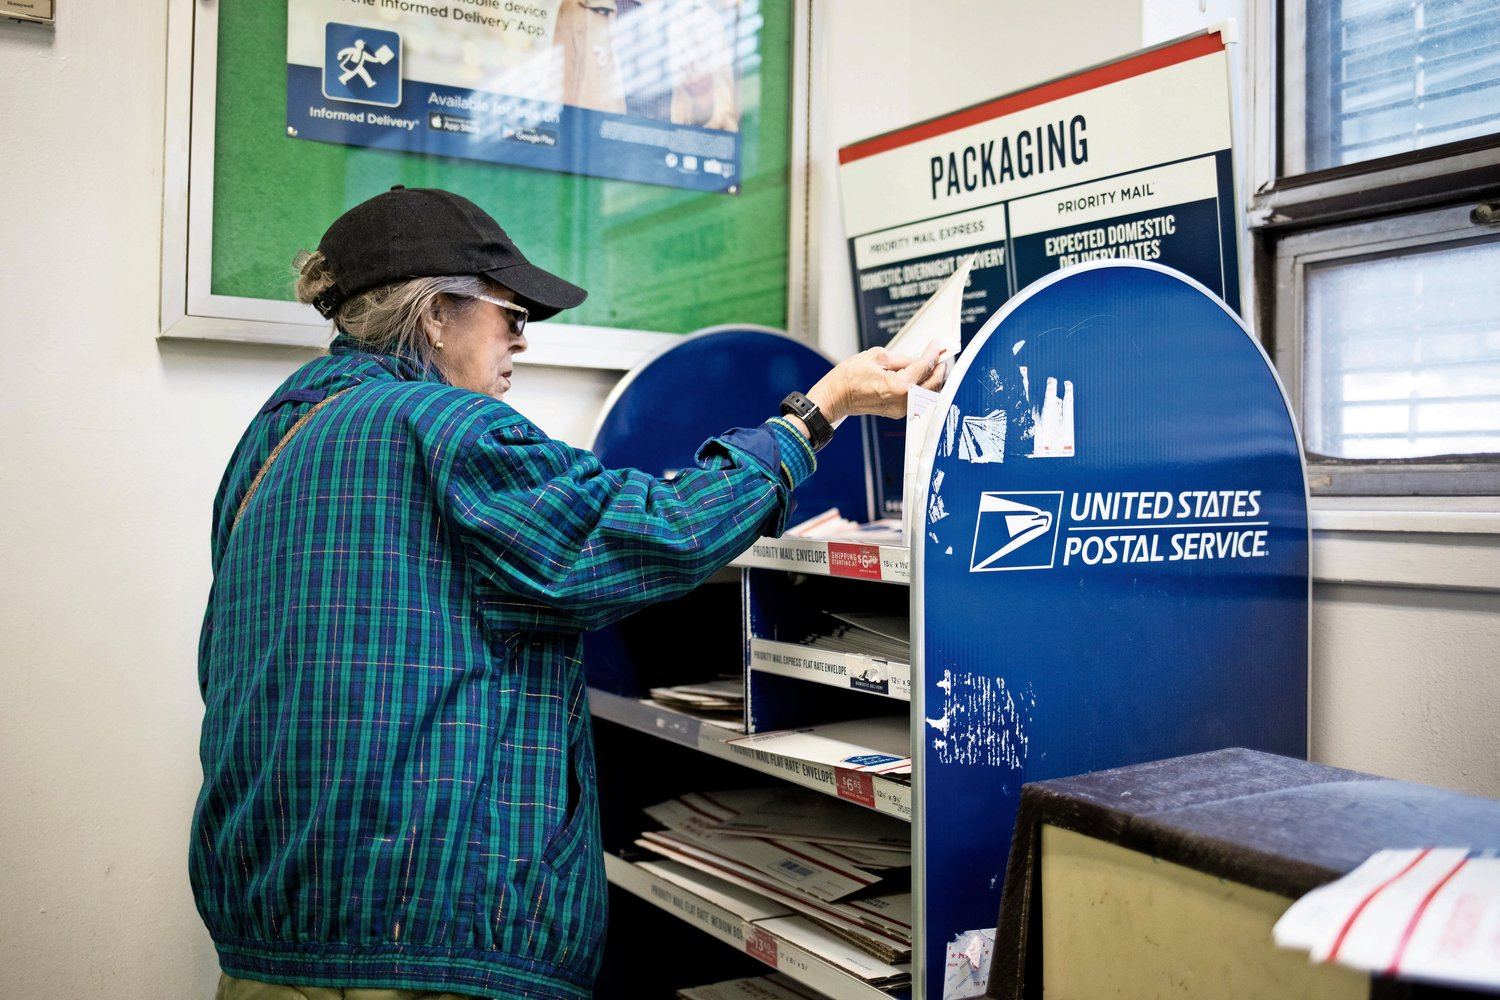 A customer selects an envelope at the Kingsbridge post office. If U.S. Rep. José Serrano has his way, affordable banking services would return to post offices like this one throughout the country.